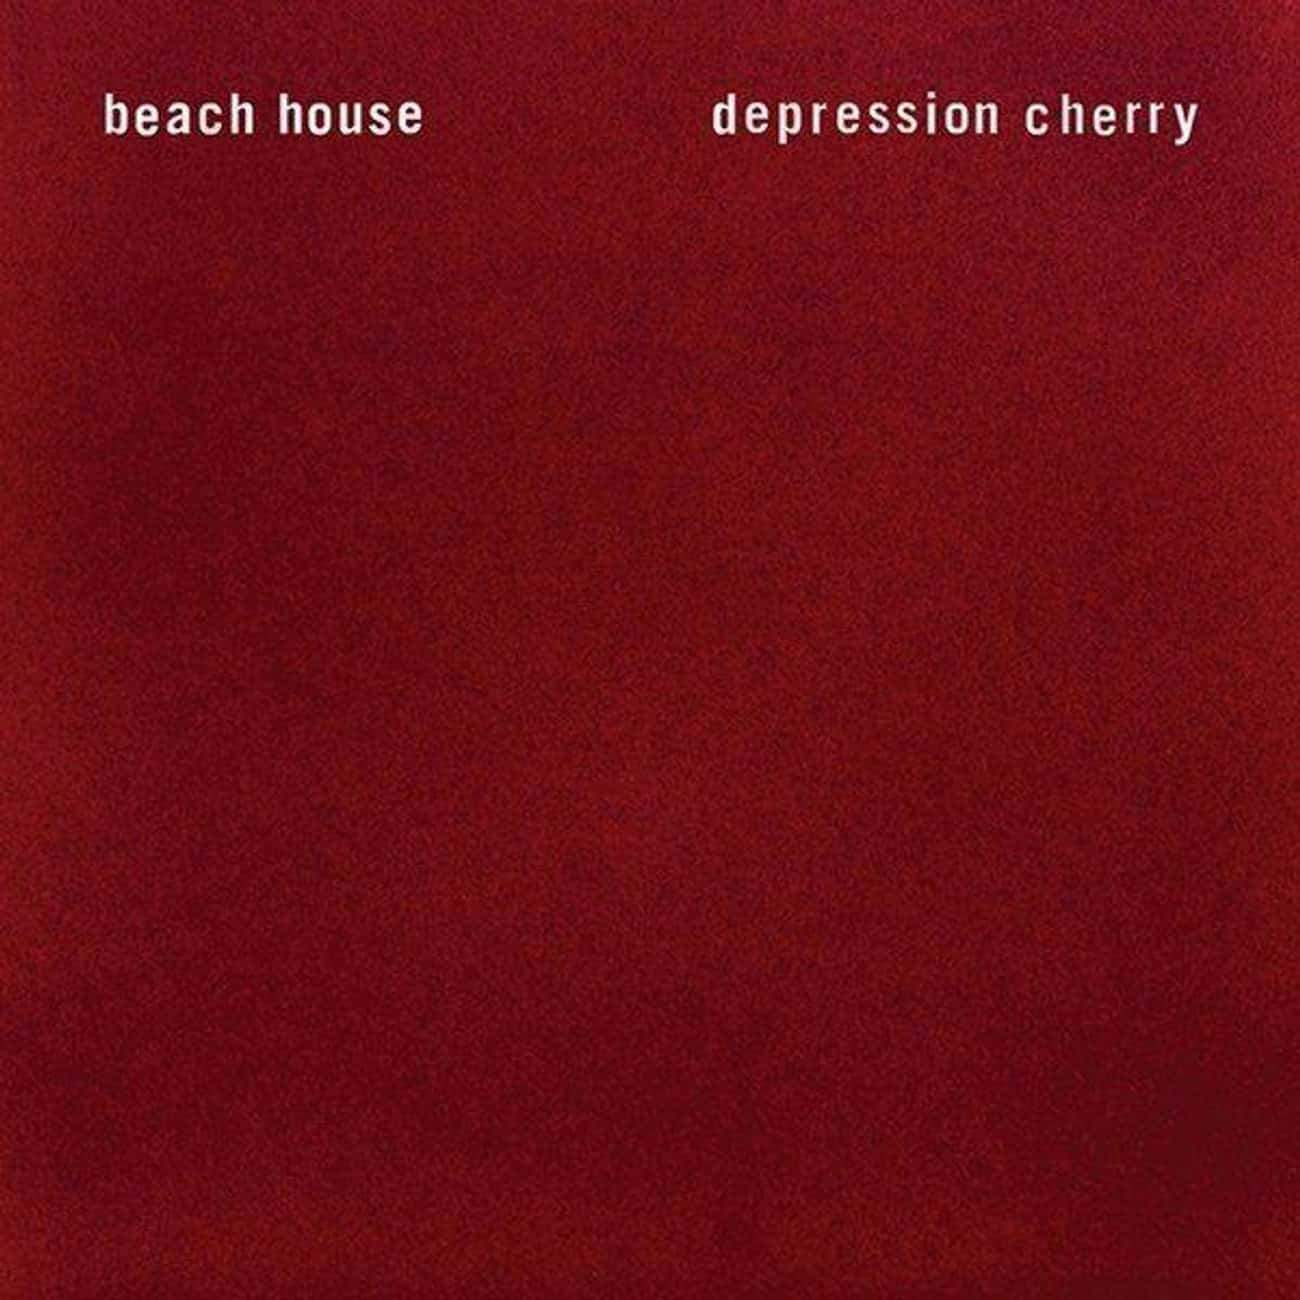 Depression Cherry is listed (or ranked) 3 on the list The Best Beach House Albums, Ranked